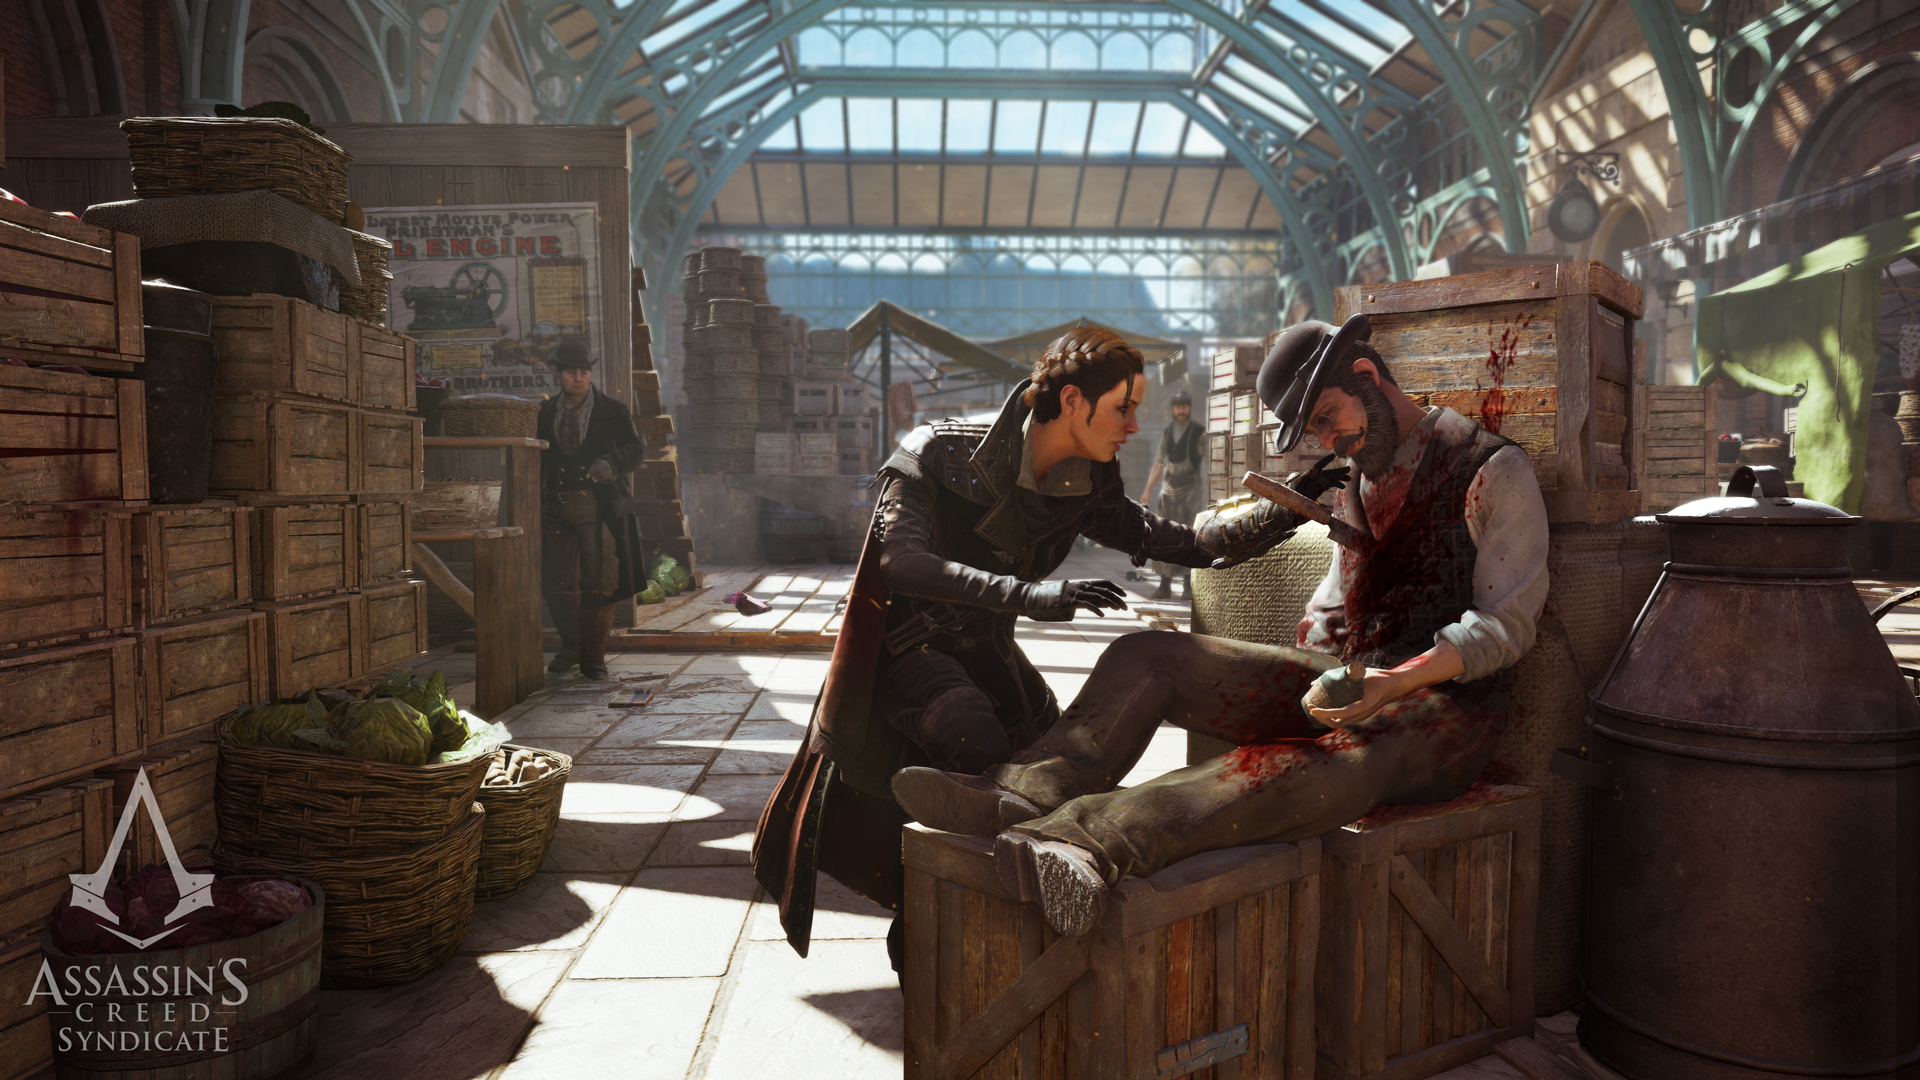 Análise do Assassin's Creed Syndicate